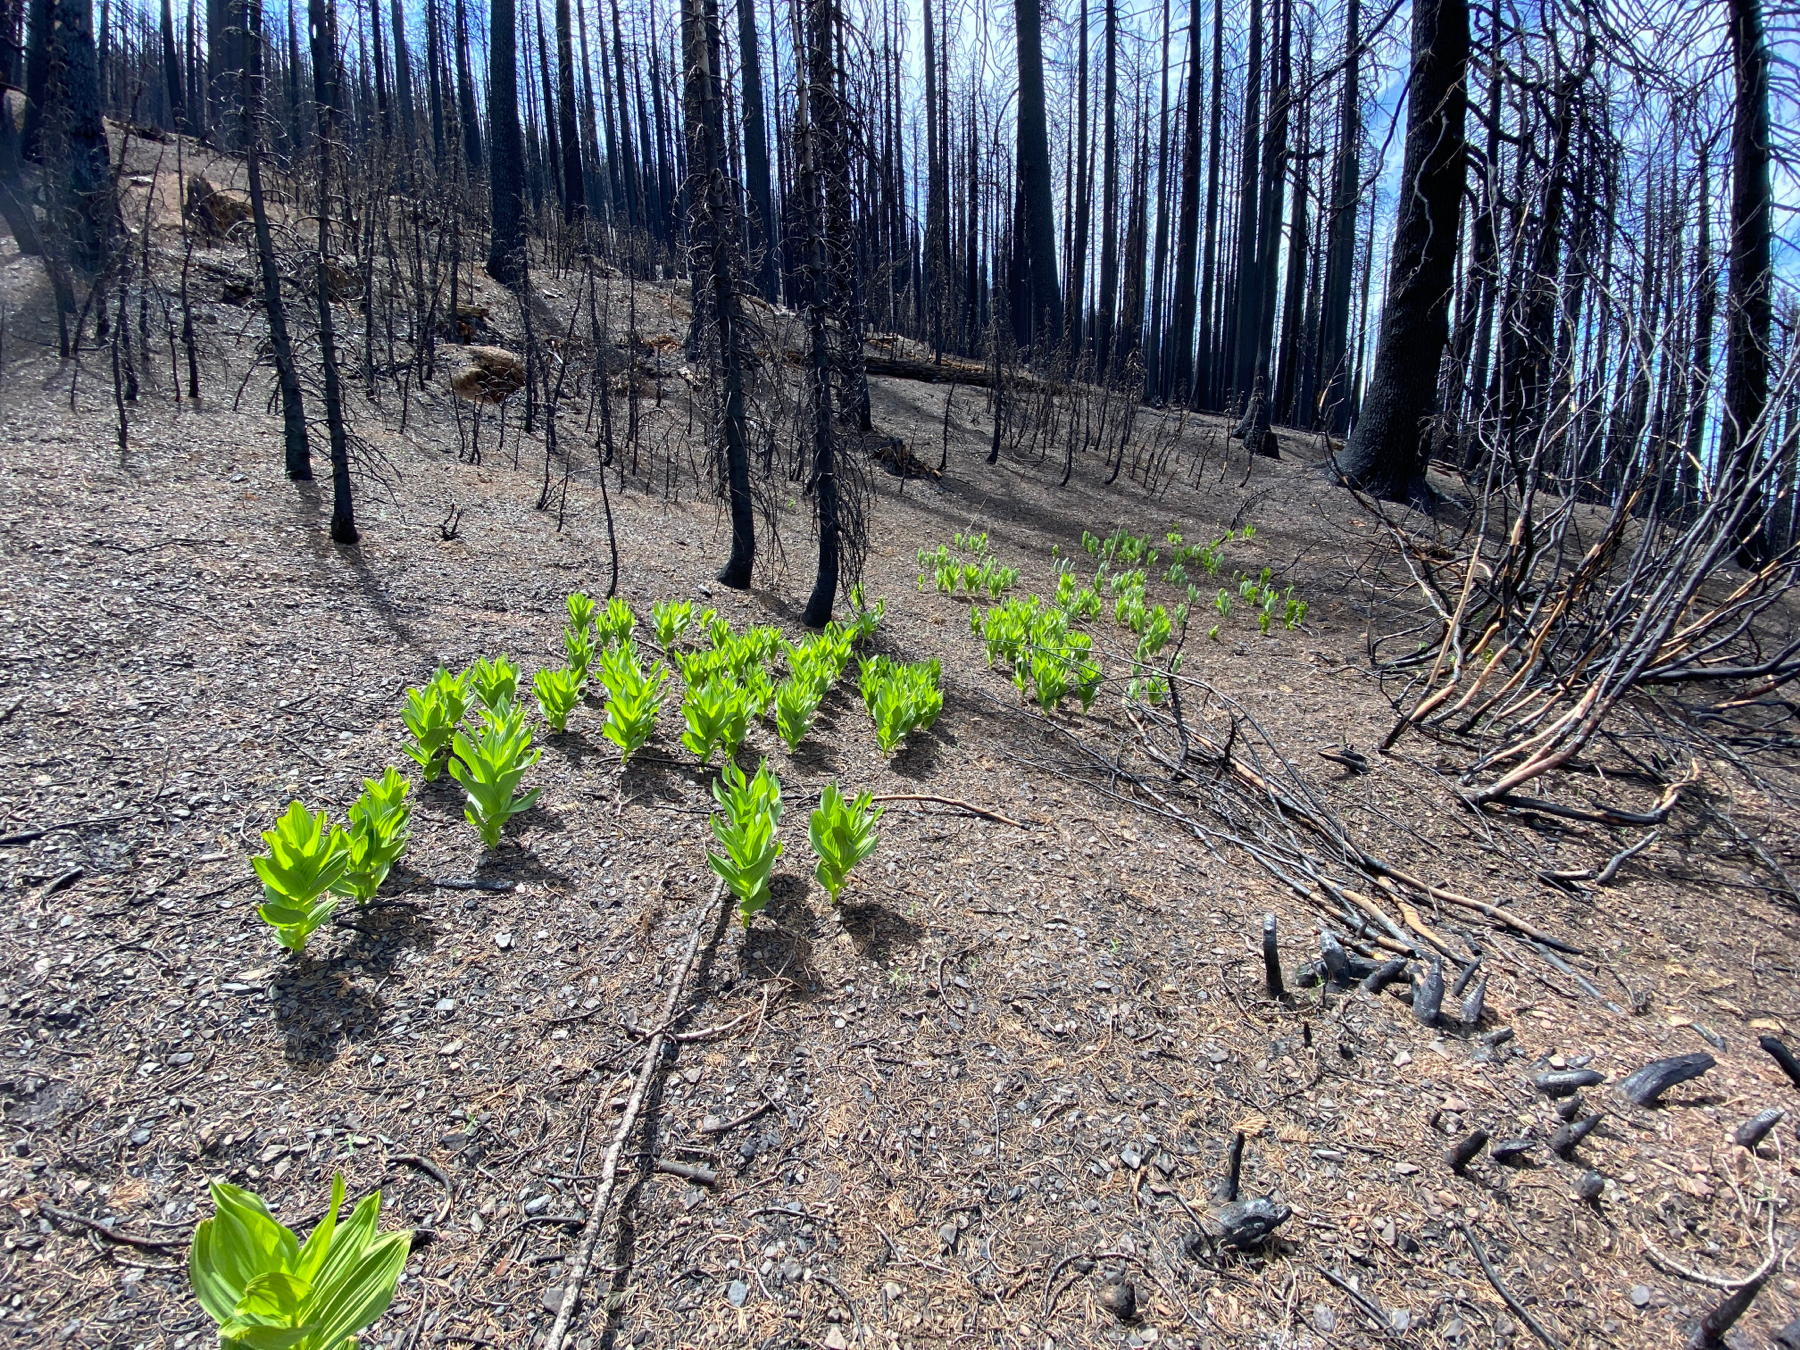 Green corn lilies amidst dark brown and black burned trees and soil